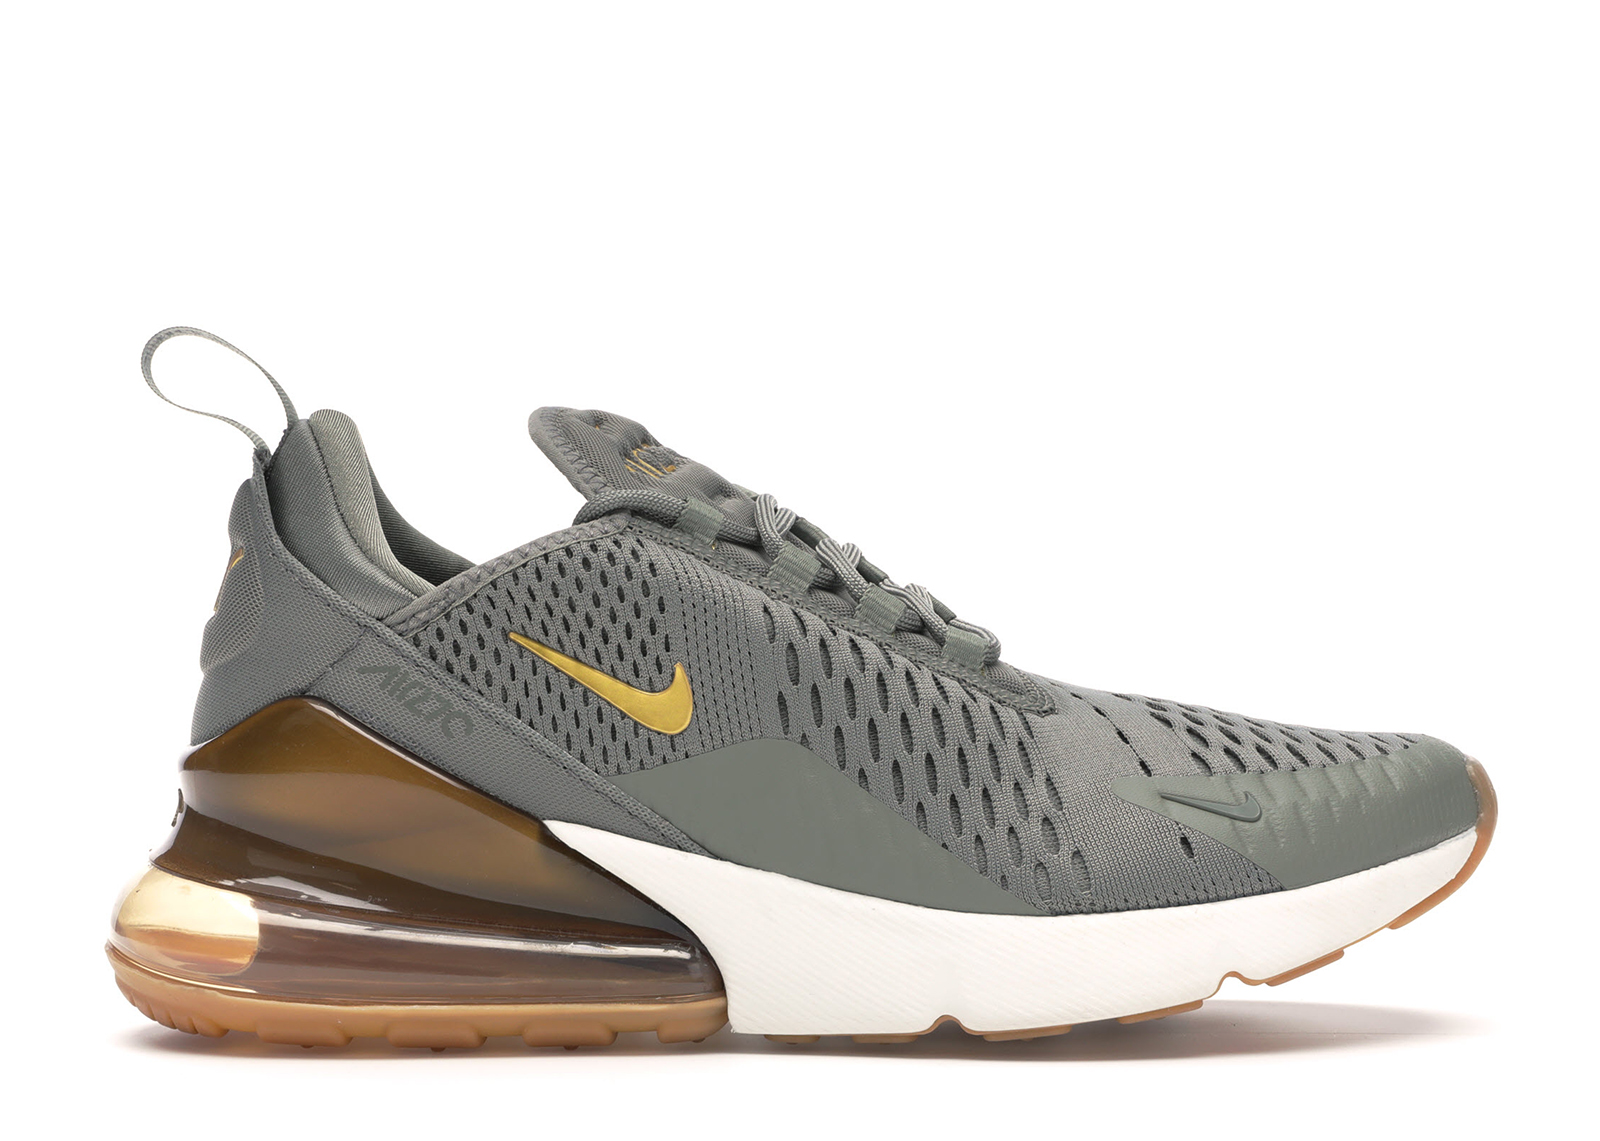 Nike Air Max 270 Dark Stucco Metallic Gold (W)